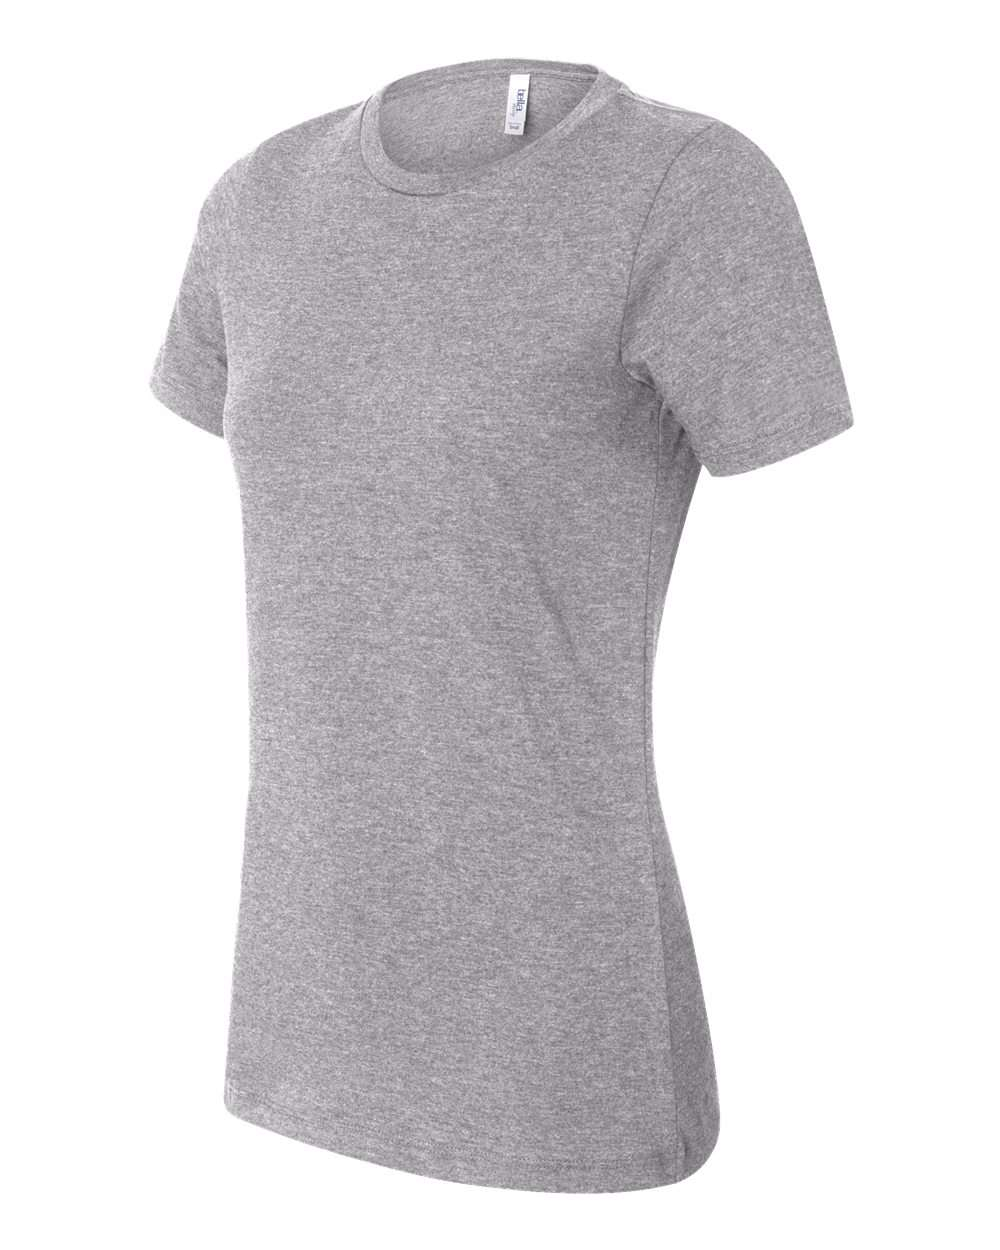 Bella+Canvas 6400CVC - Women's Relaxed Heather CVC Short Sleeve Shirt